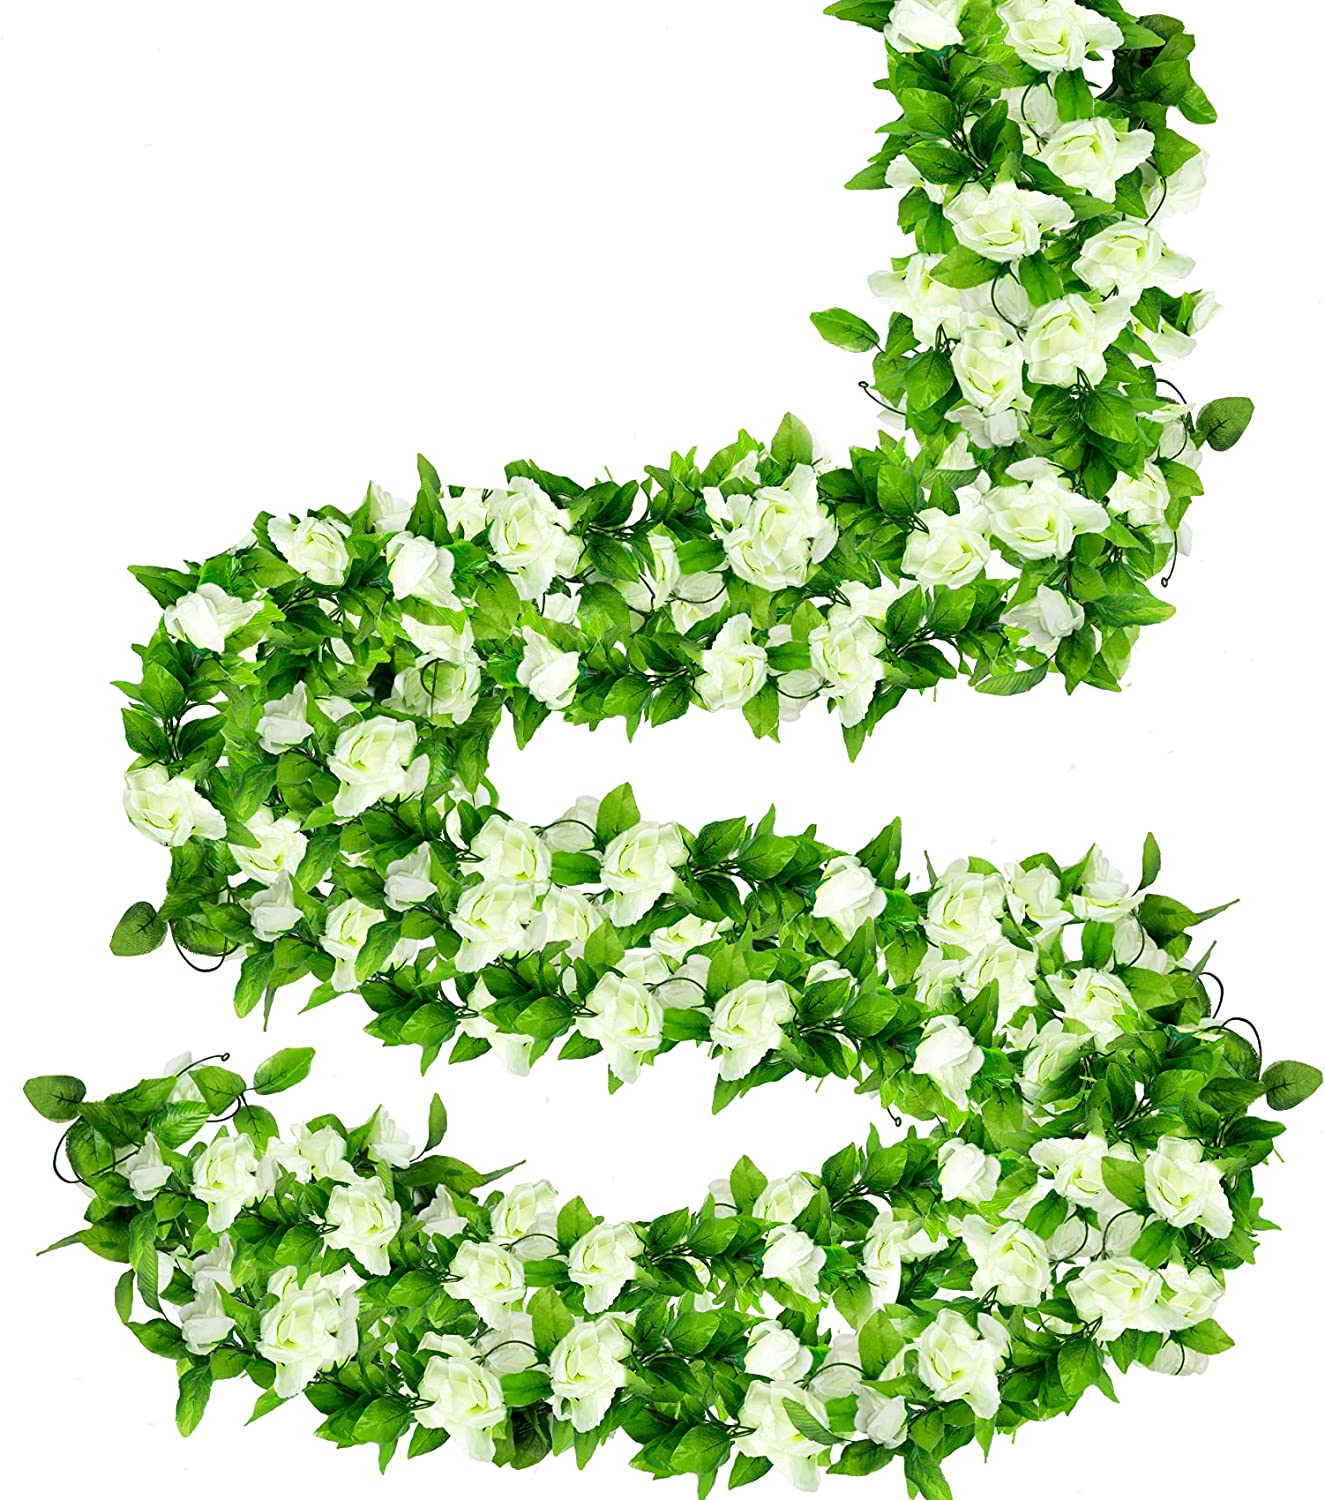 ADORAMOUR 5Pack Artificial Flowers Vines for Room Decor Aesthetic, Fake Roses Floral Garland Wall Decorations for Wedding Party Home Bedroom Garden Patio Indoor Outdoor- White